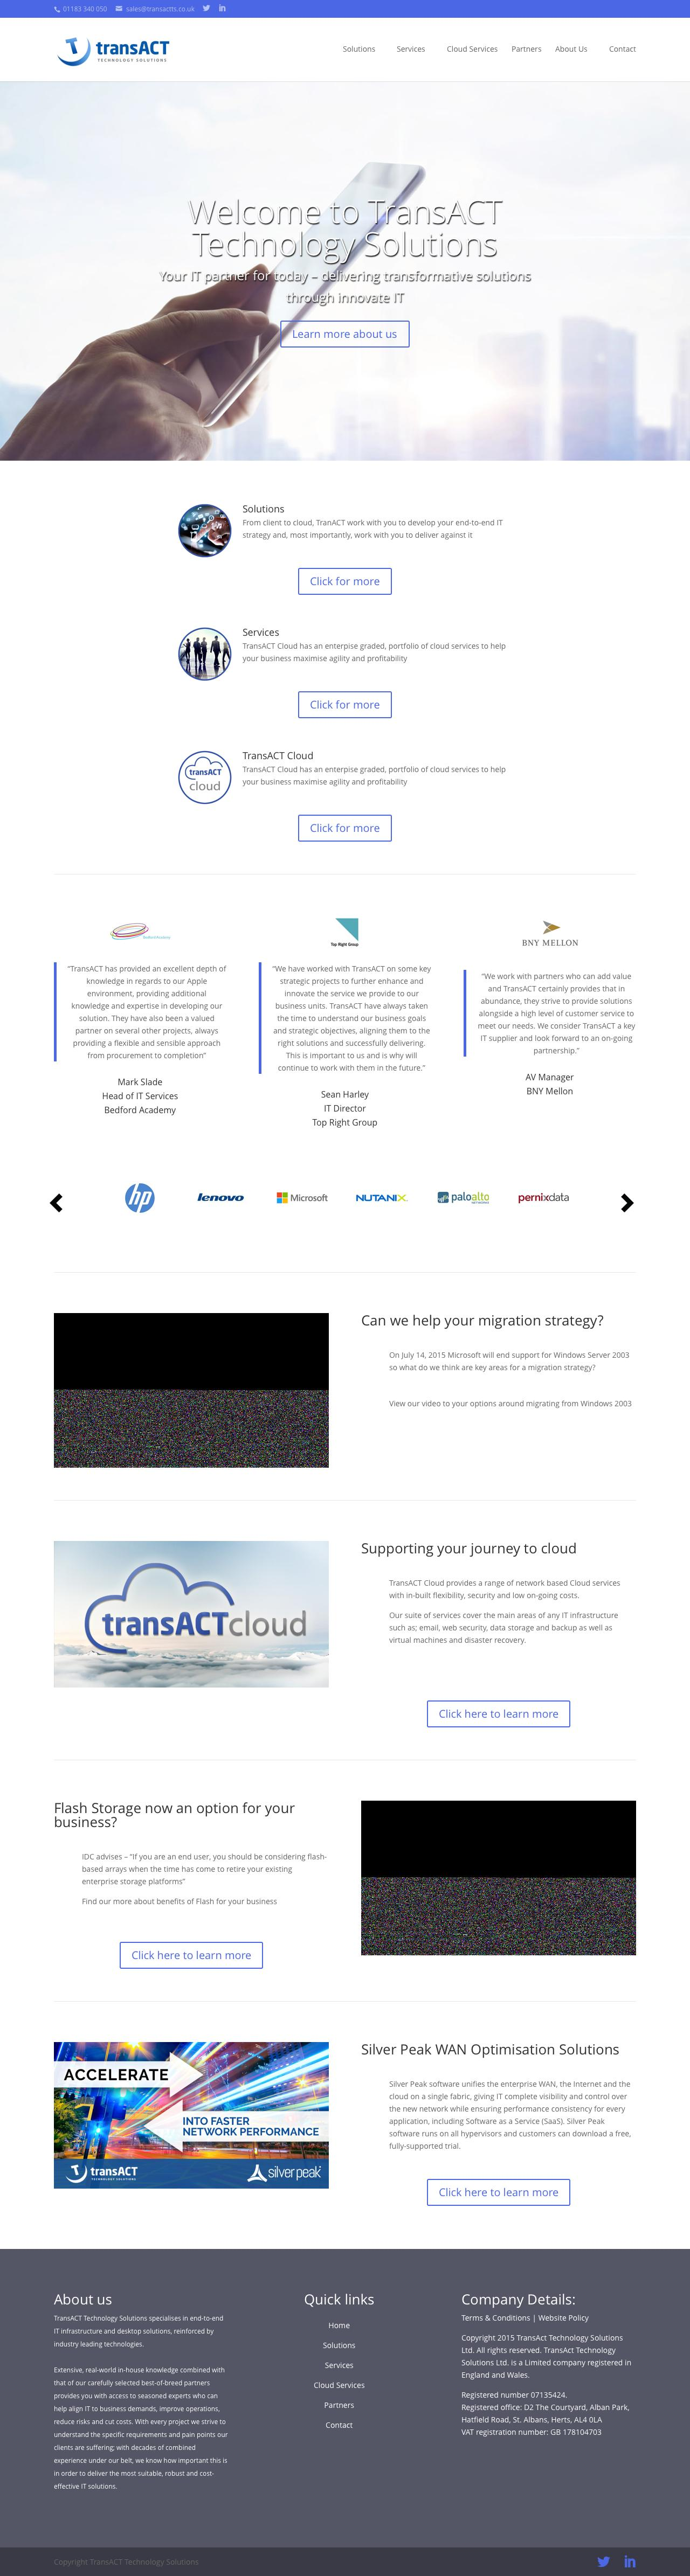 Web Design Example | A page on transactts co uk | Crayon